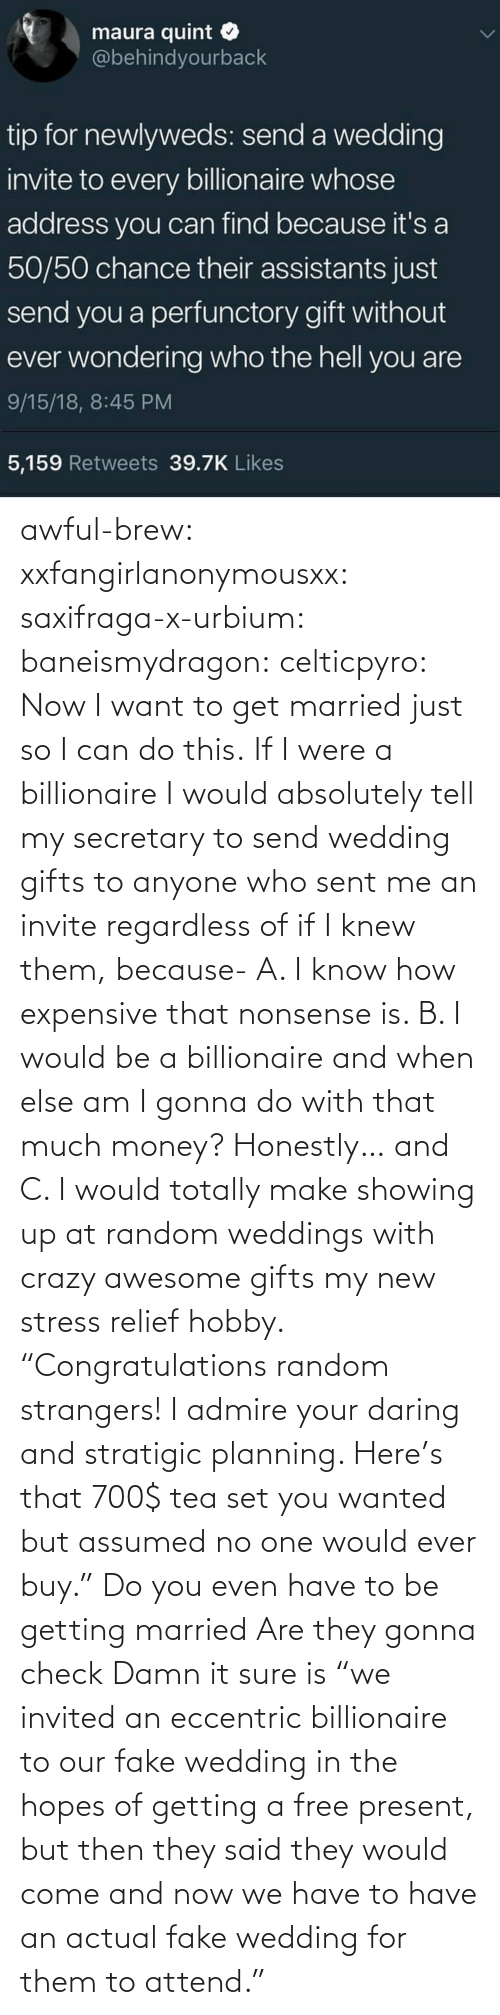 "relief: awful-brew:  xxfangirlanonymousxx:  saxifraga-x-urbium:  baneismydragon:  celticpyro: Now I want to get married just so I can do this.  If I were a billionaire I would absolutely tell my secretary to send wedding gifts to anyone who sent me an invite regardless of if I knew them, because- A. I know how expensive that nonsense is. B. I would be a billionaire and when else am I gonna do with that much money? Honestly… and C. I would totally make showing up at random weddings with crazy awesome gifts my new stress relief hobby. ""Congratulations random strangers! I admire your daring and stratigic planning. Here's that 700$ tea set you wanted but assumed no one would ever buy.""   Do you even have to be getting married Are they gonna check   Damn it sure is  ""we invited an eccentric billionaire to our fake wedding in the hopes of getting a free present, but then they said they would come and now we have to have an actual fake wedding for them to attend."""